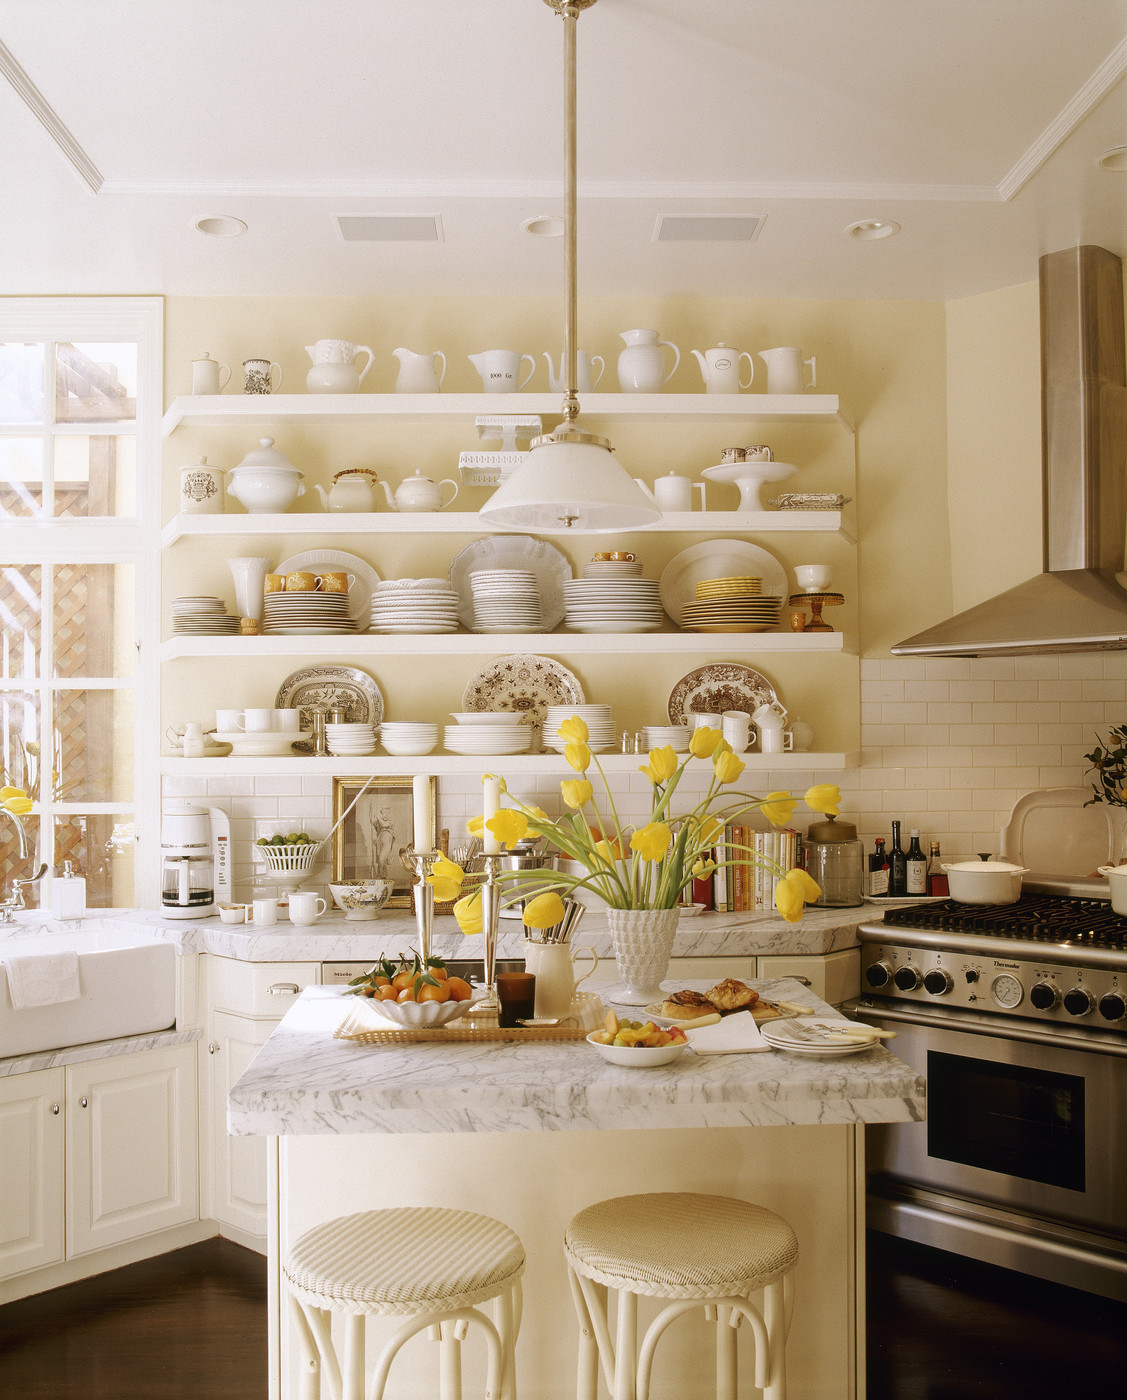 Shelves For Kitchen Wall: Wall Shelving Photos, Design, Ideas, Remodel, And Decor